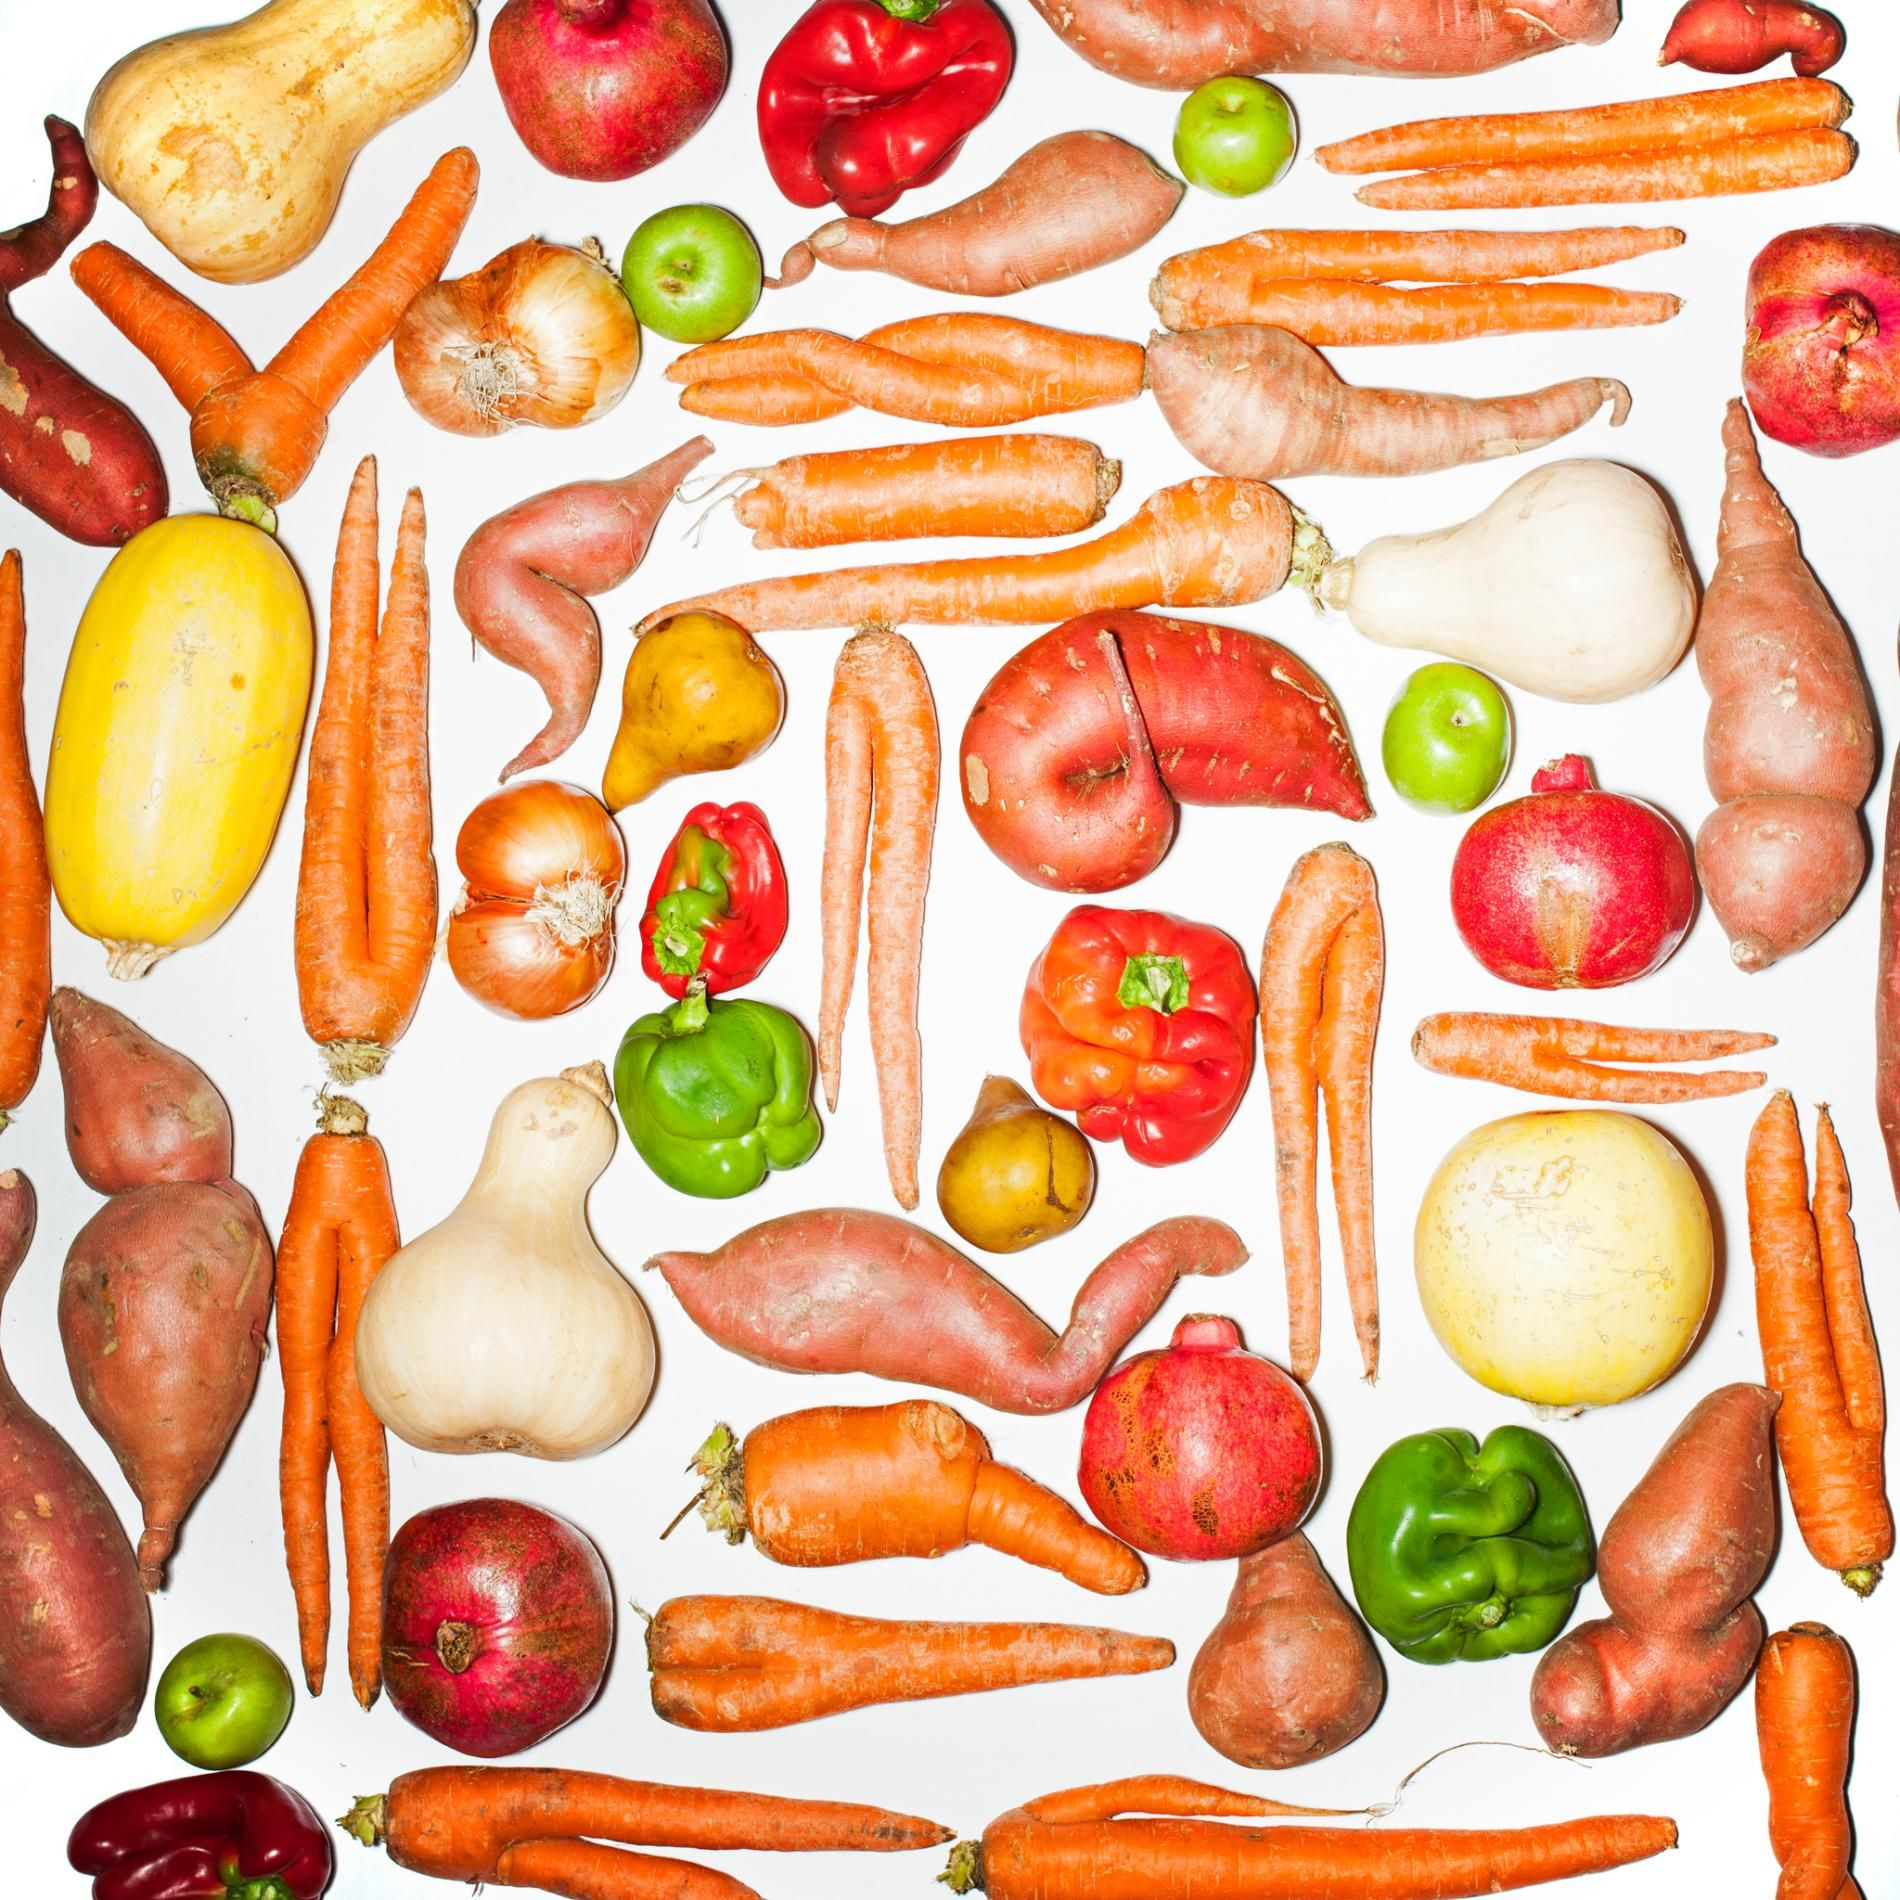 About a third of the planet's food goes to waste, often because of its looks. That's enough to feed two billion people.